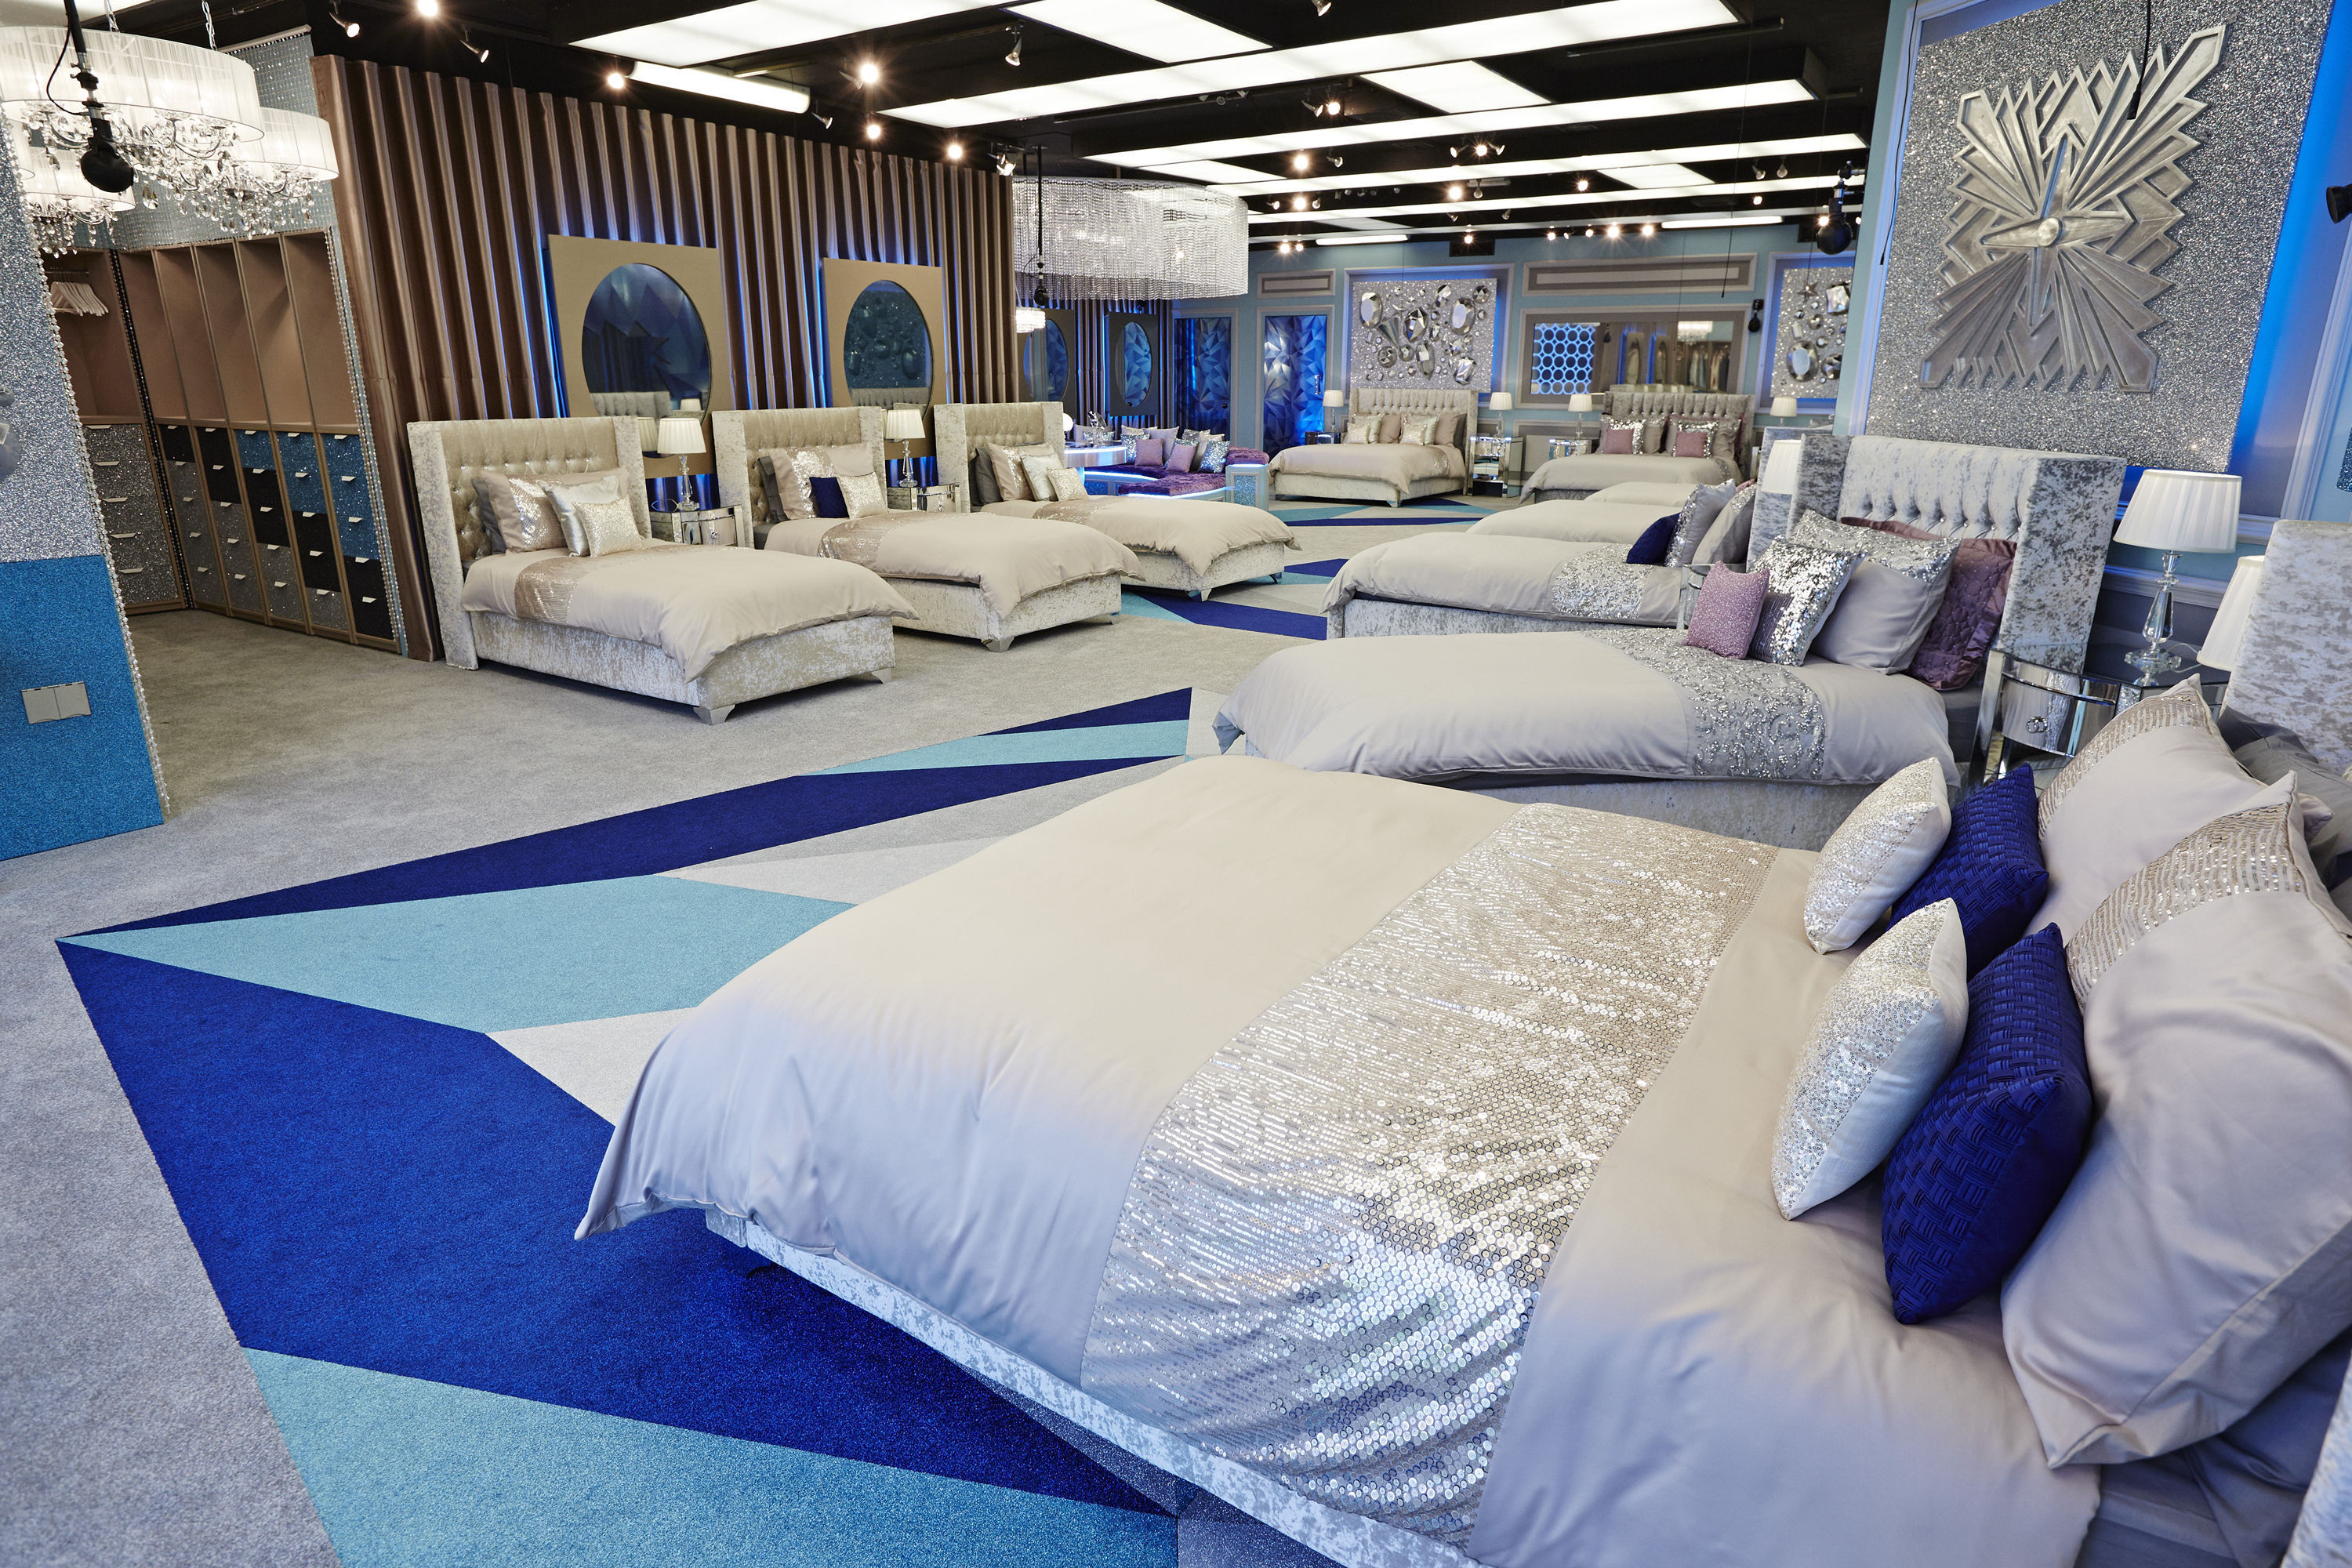 The bedroom in the new look Big Brother House.